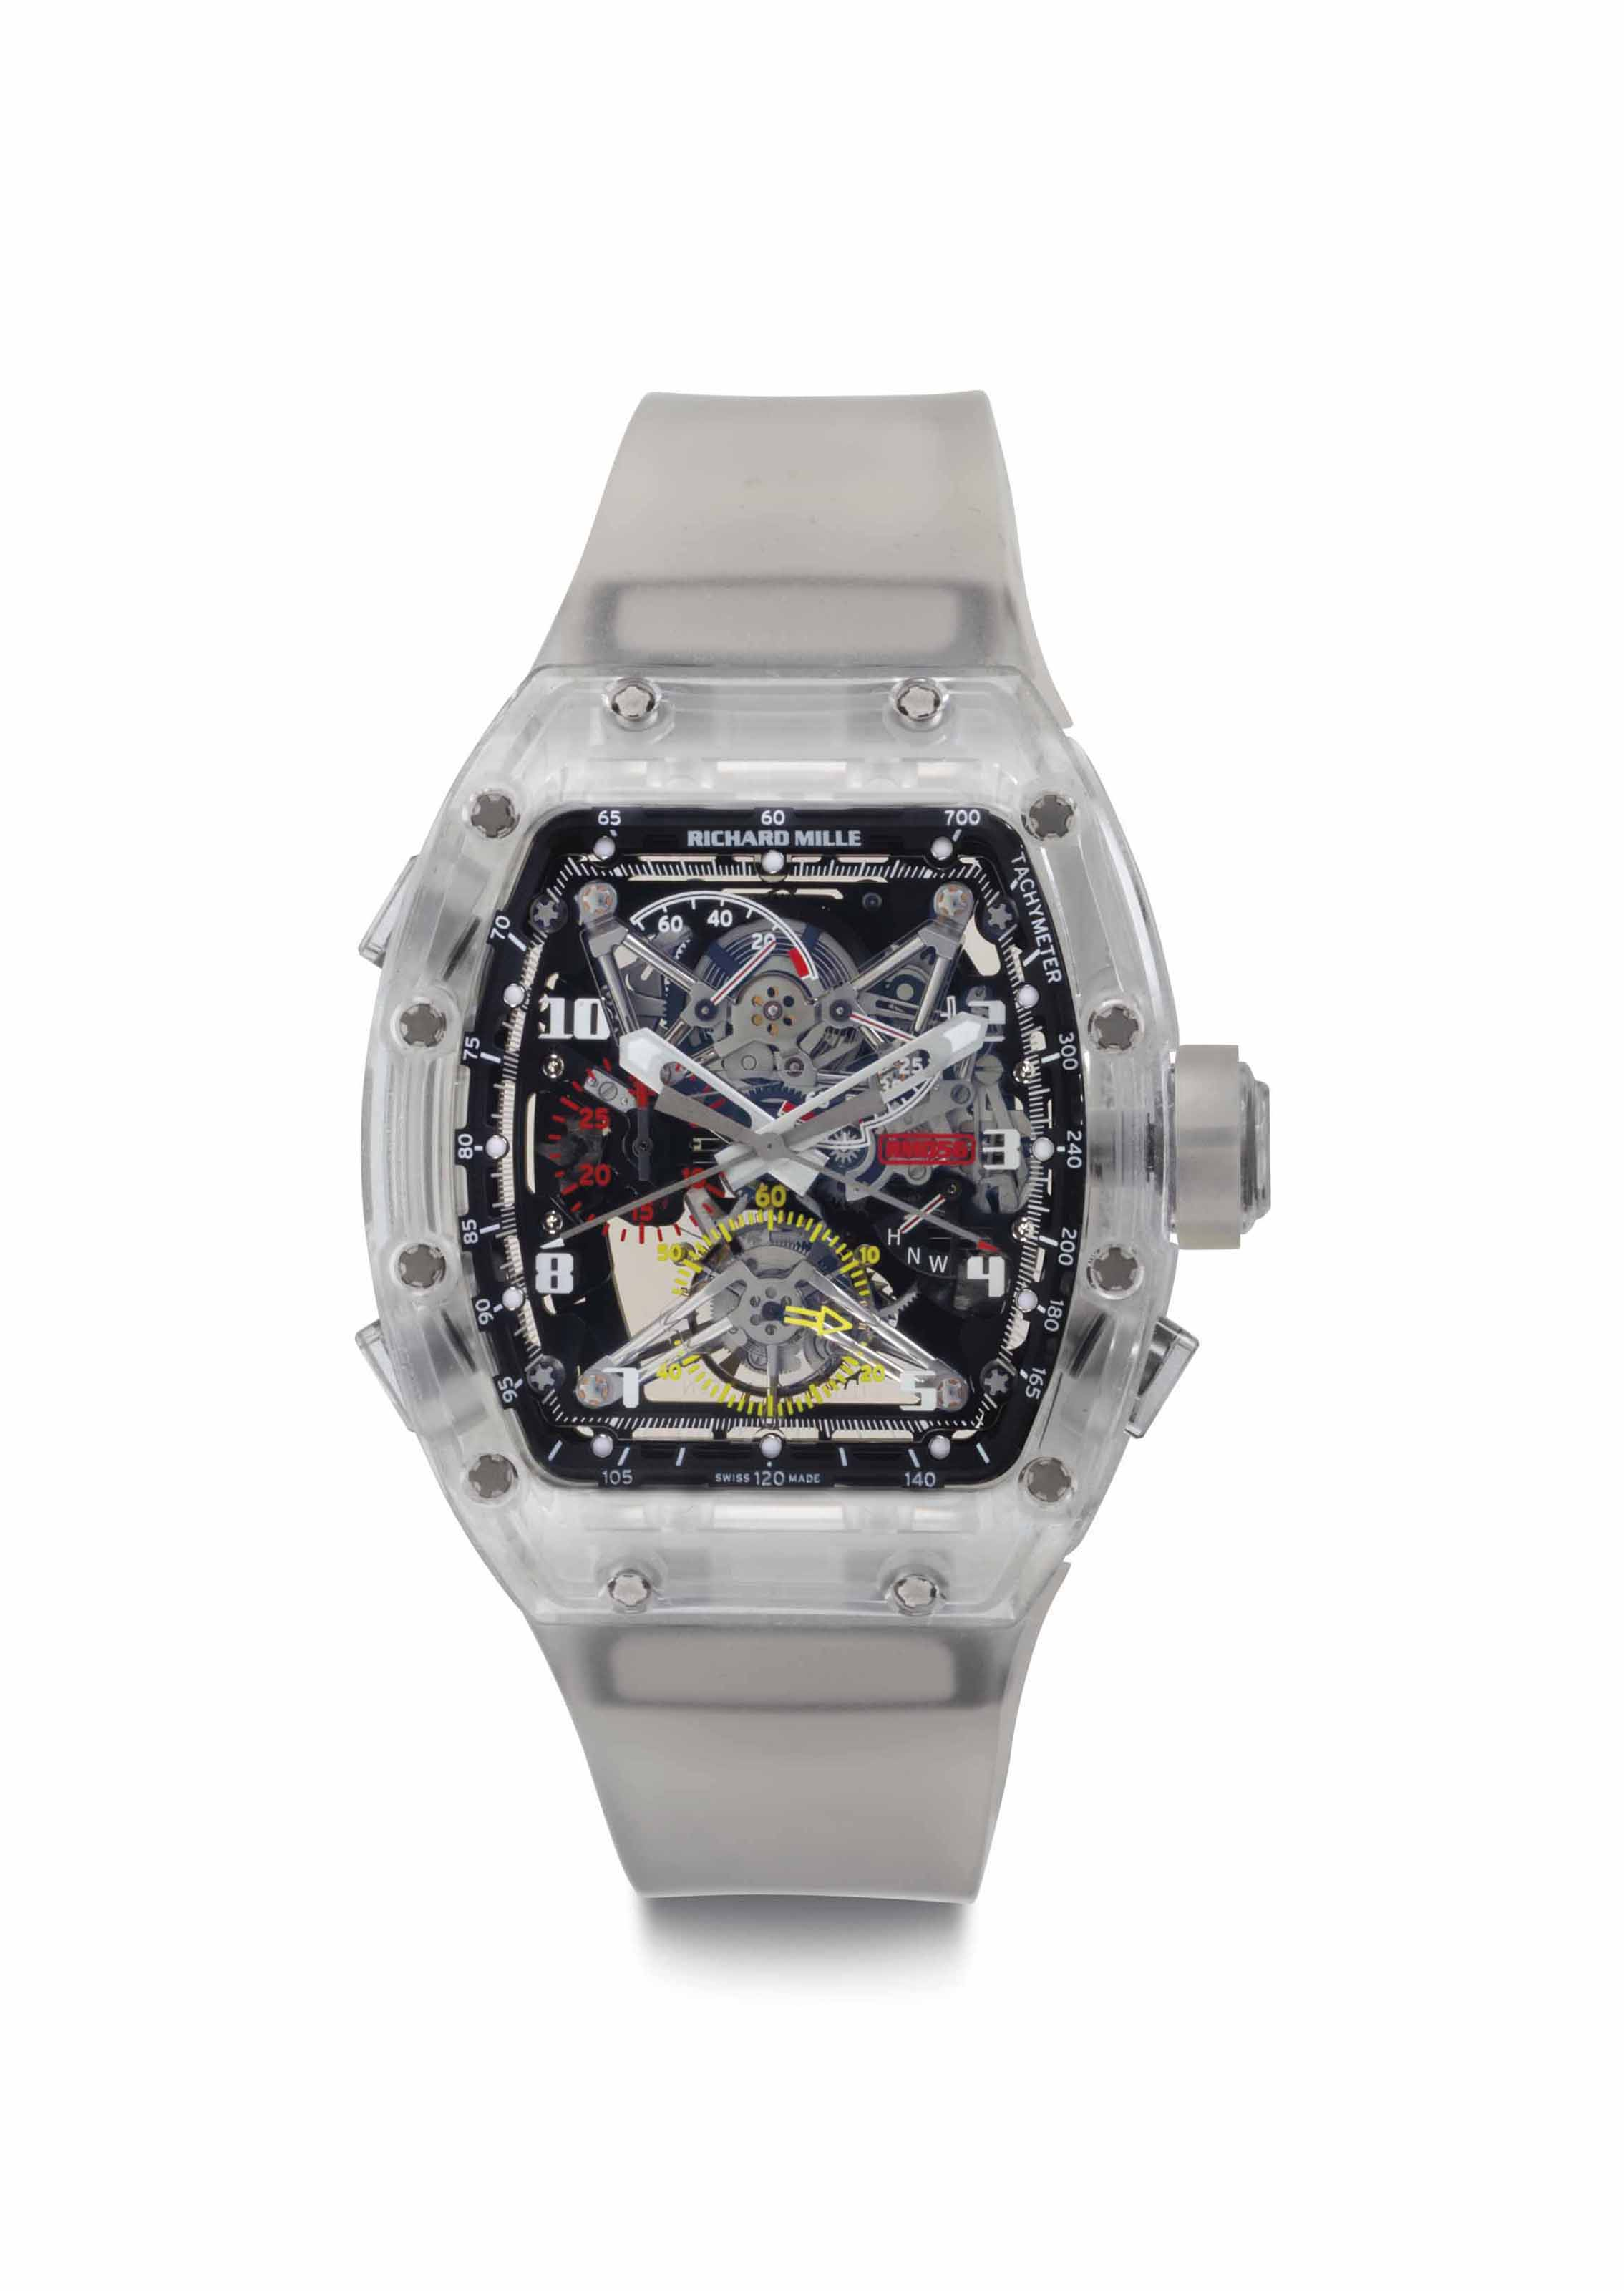 Richard Mille. An Extremely Fine and Very Rare Sapphire Split-Seconds Chronograph Wristwatch with Tourbillon and Power Reserve